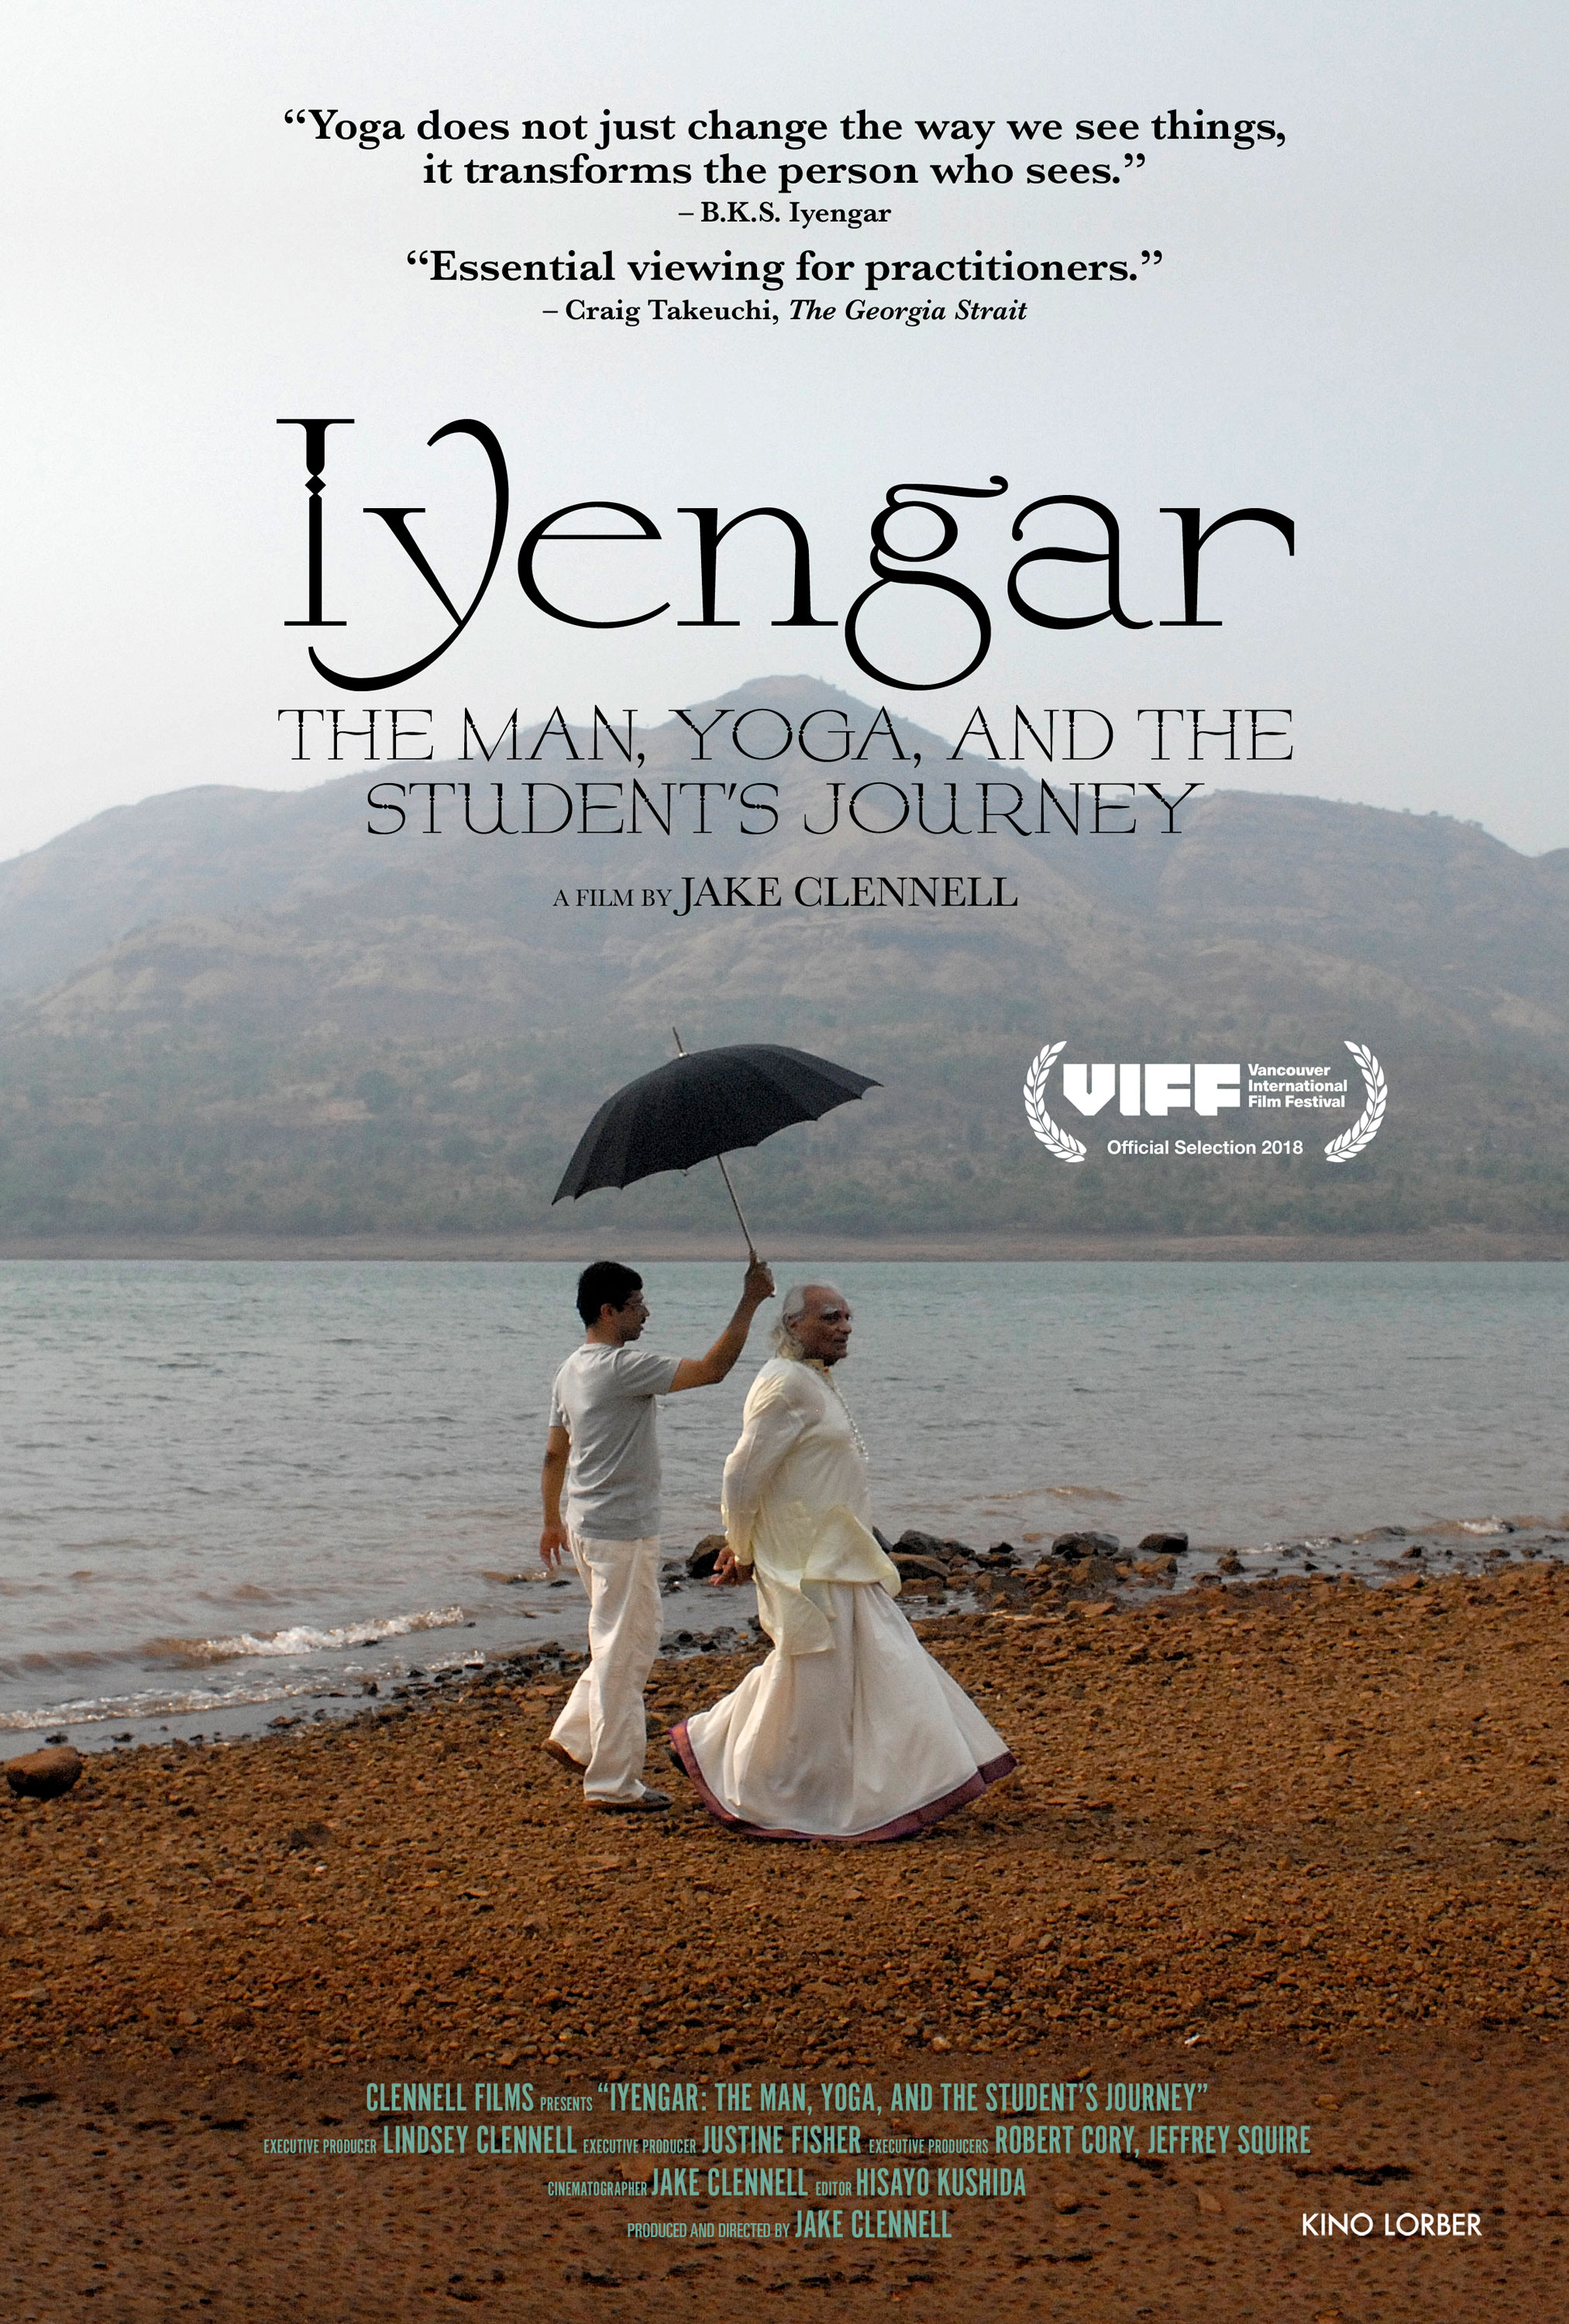 Iyengar: The Man, Yoga, and the Student's Journey Poster